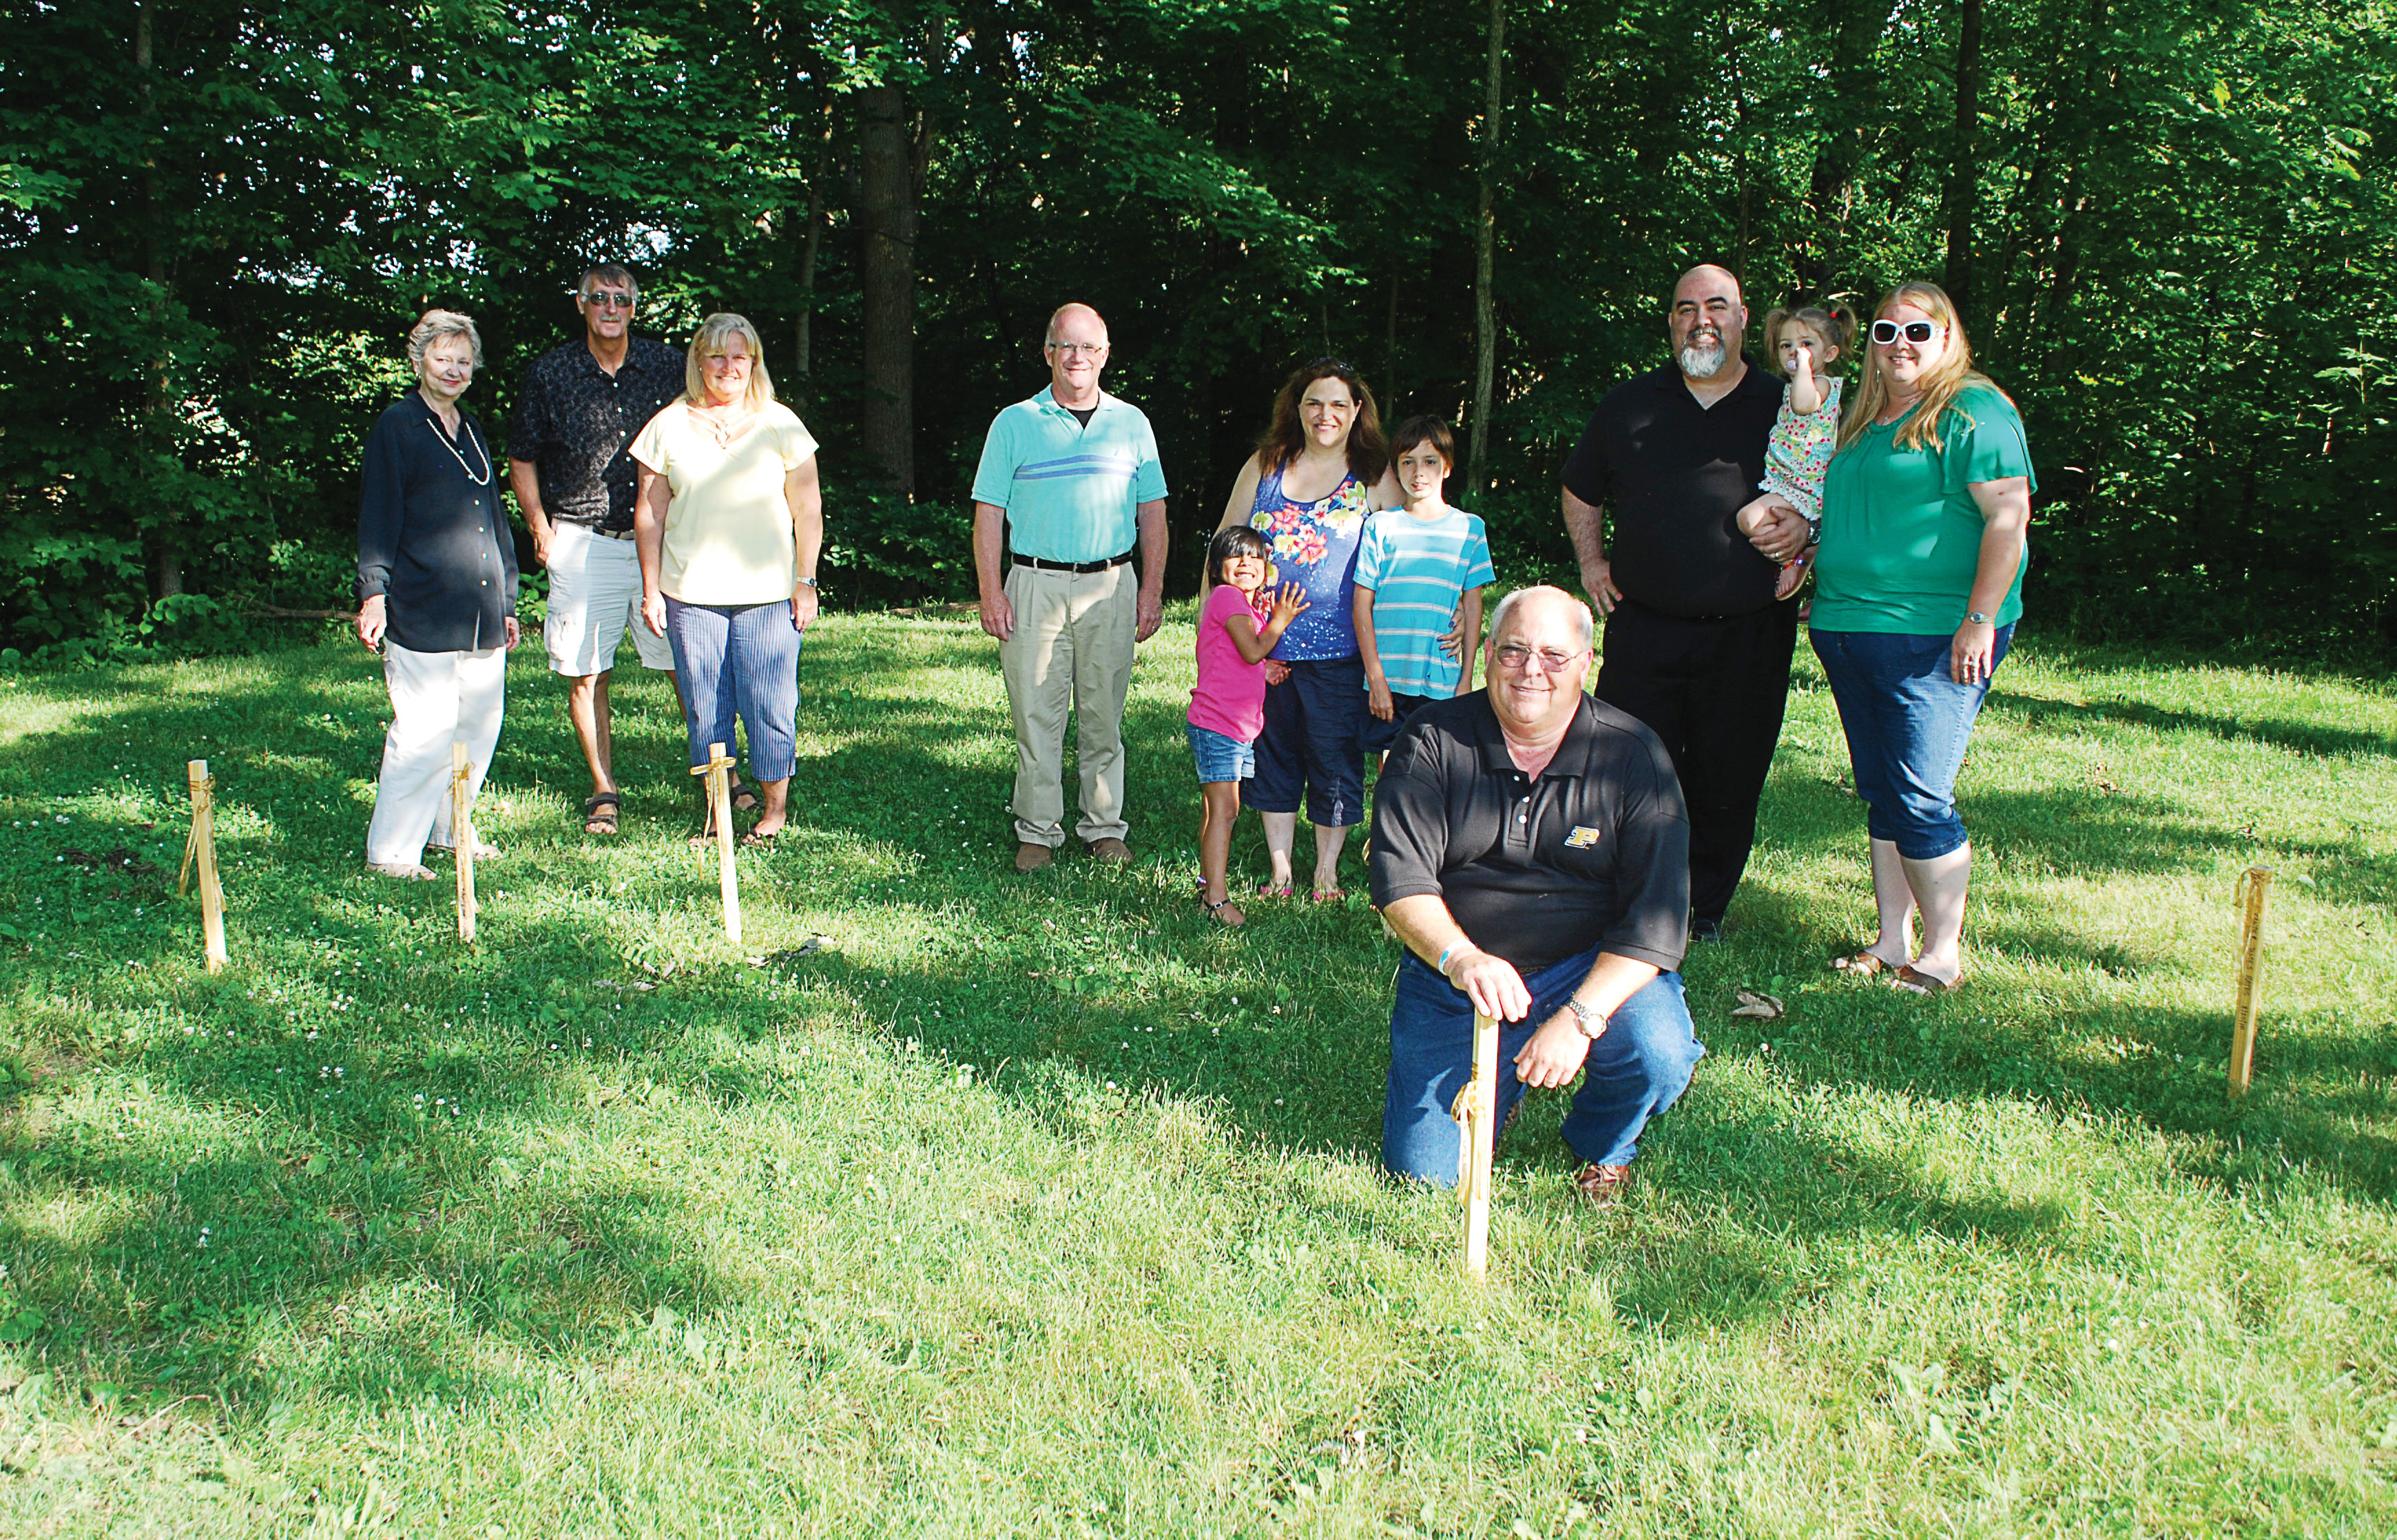 From left: Mary Sue Rowland, Bill and Sue Childs, Garry Warren, Ashley, Suzanne and Christian Brooks, Kirk Forbes and Jim, Madeline and Brandi Bates place temporary wooden stakes in the location of the Angel of Hope Memorial Garden to kick off its fundraising efforts. (Photos by Robert Herrington)